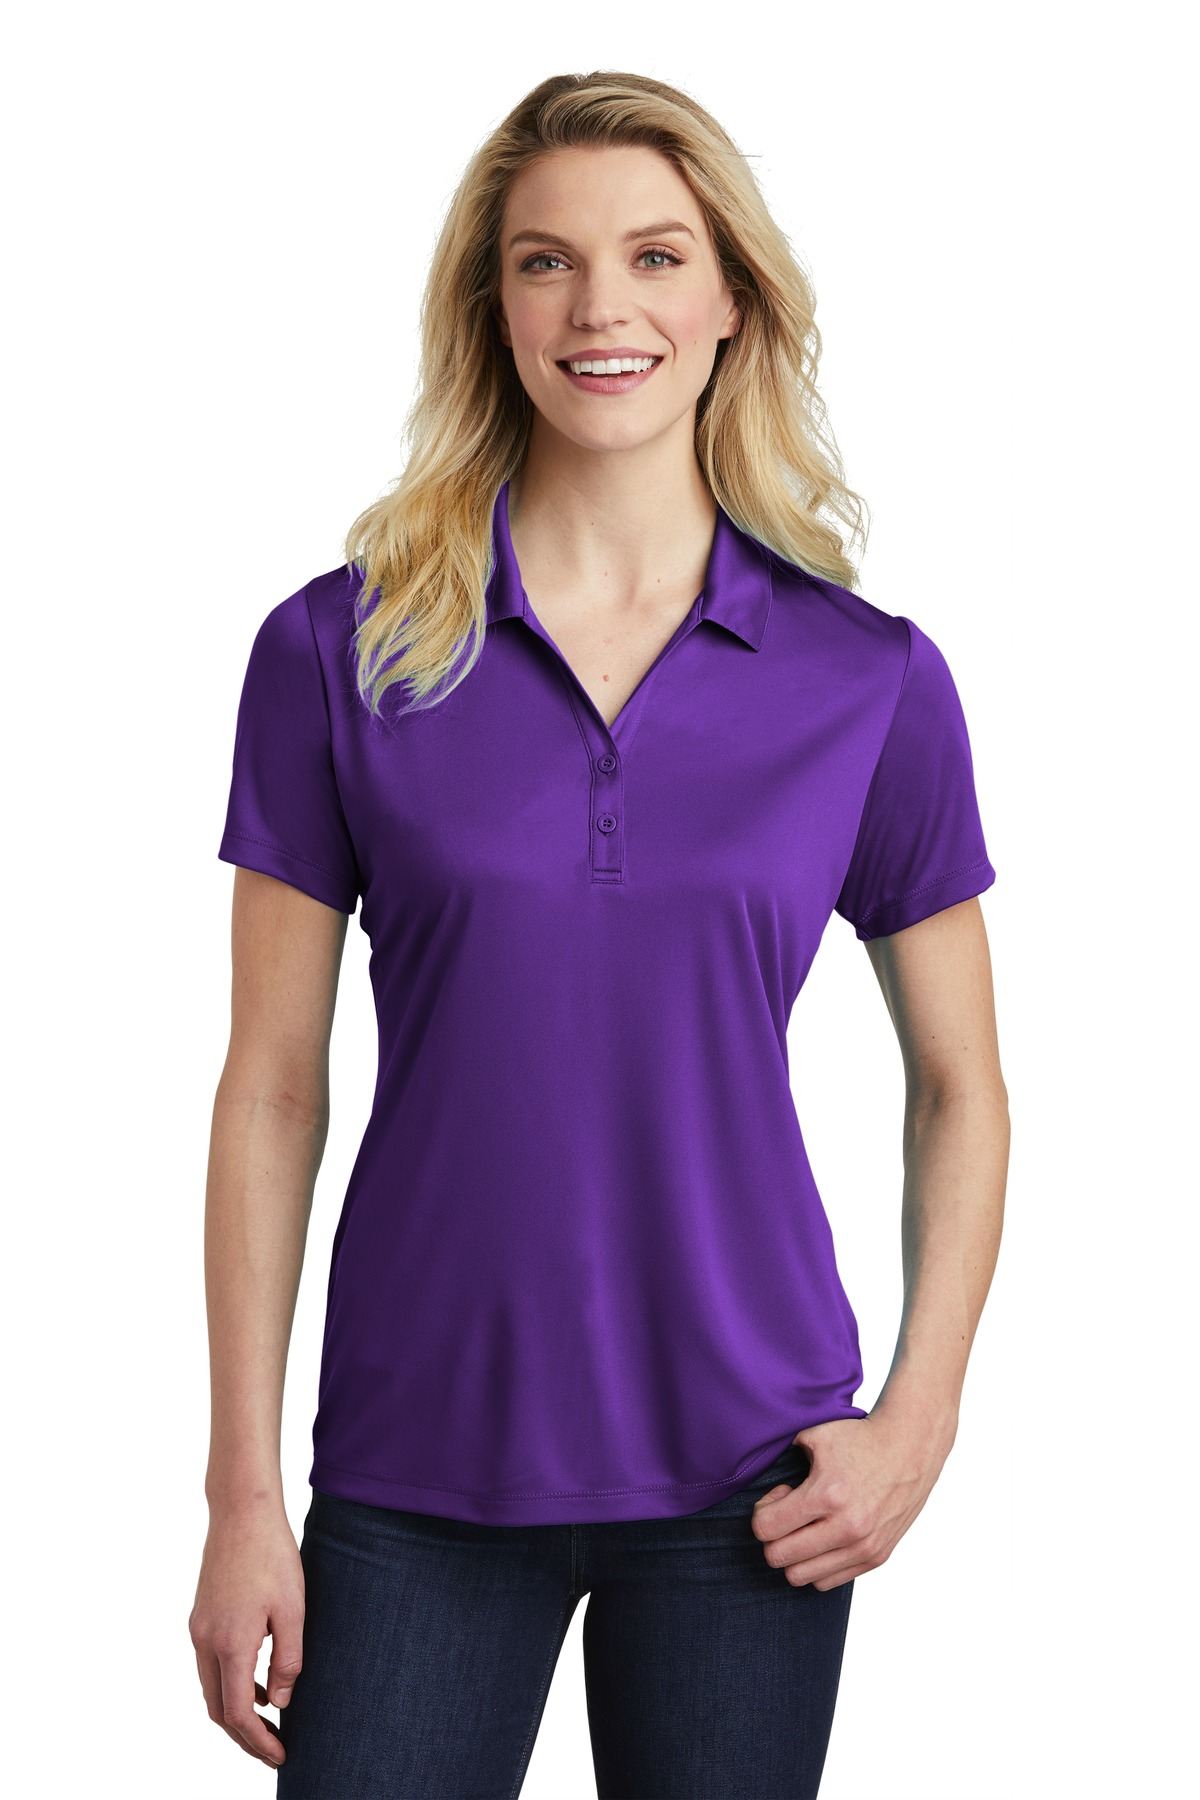 Sport-Tek  ®  Ladies PosiCharge  ®  Competitor  ™  Polo. LST550 - Purple